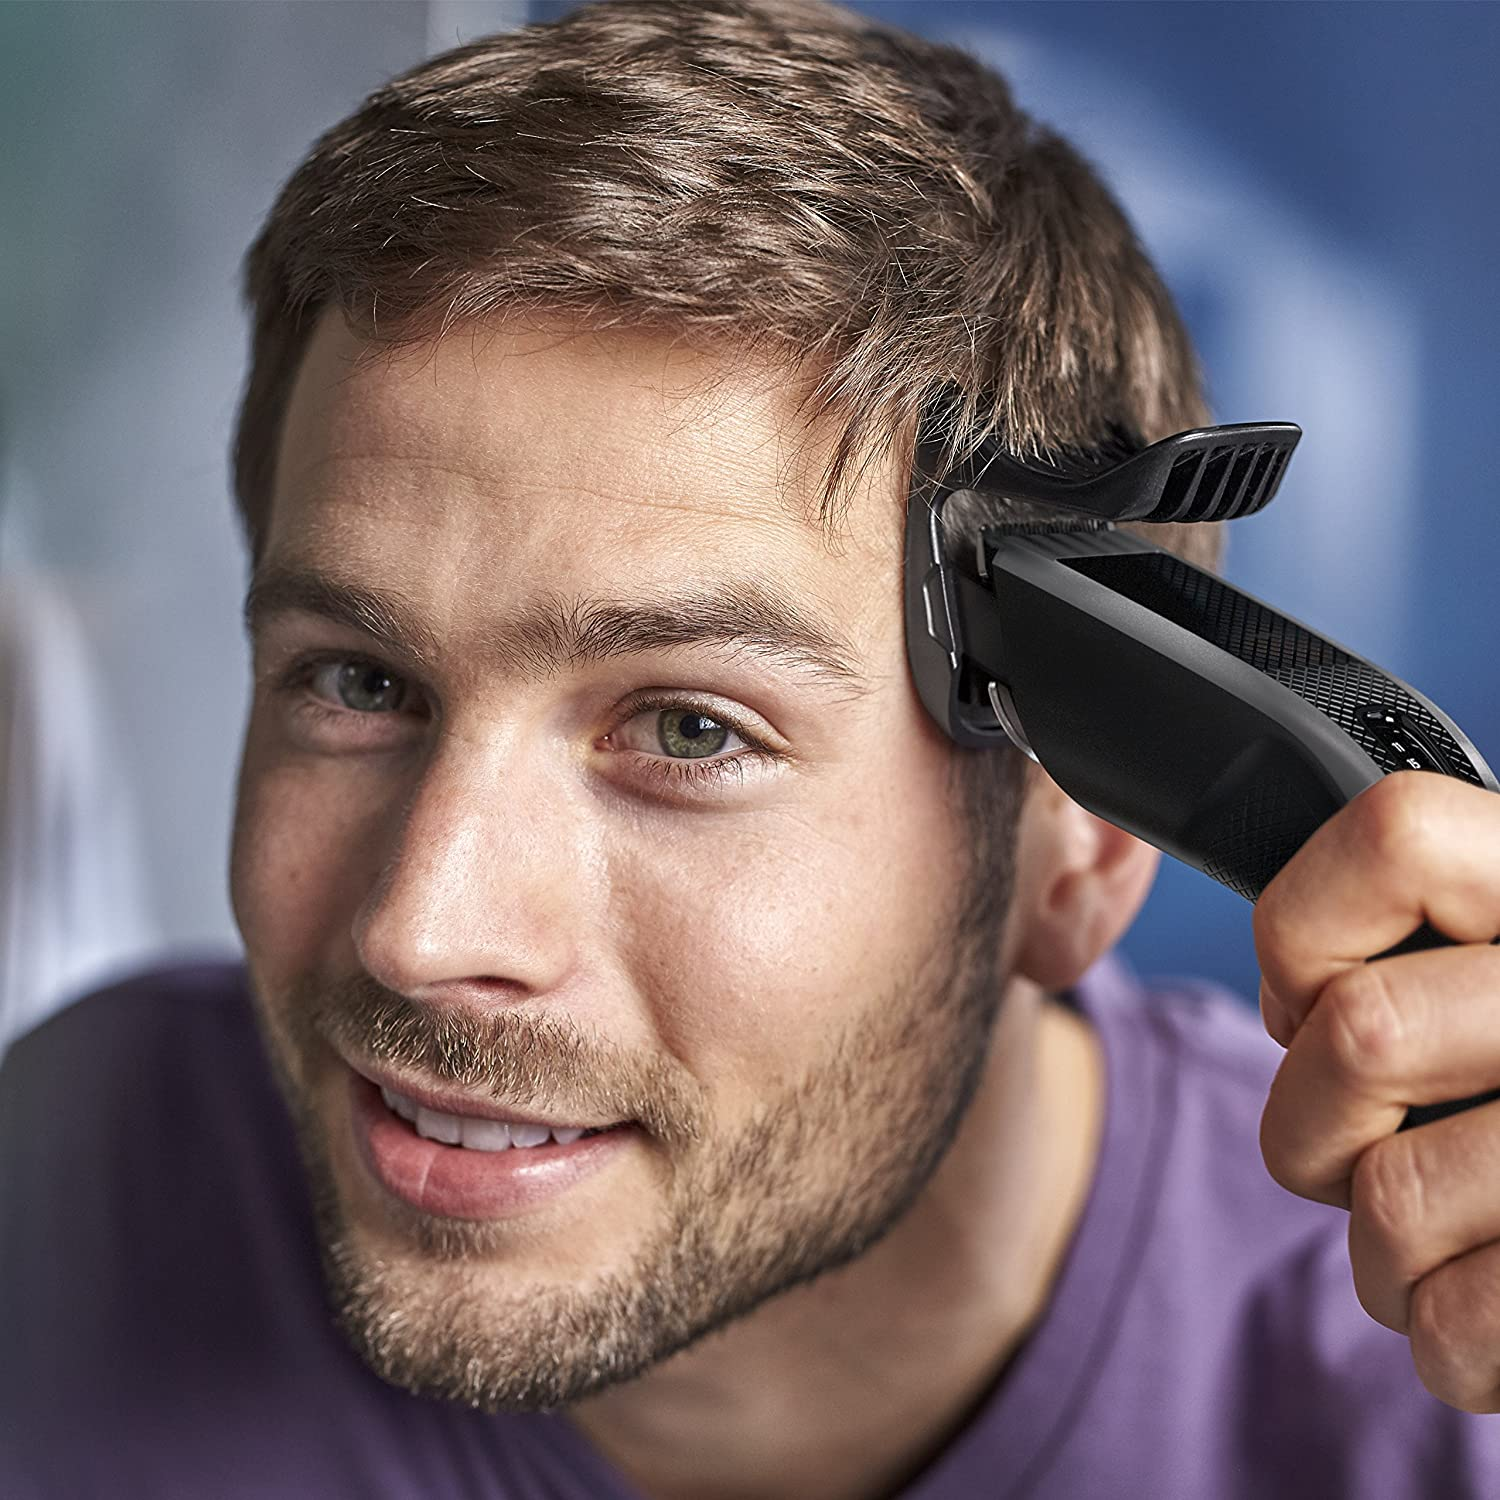 Philips Series 3000 Hair Clipper with Stainless Steel Blades (Cordless) - HC3520/13 enlarge